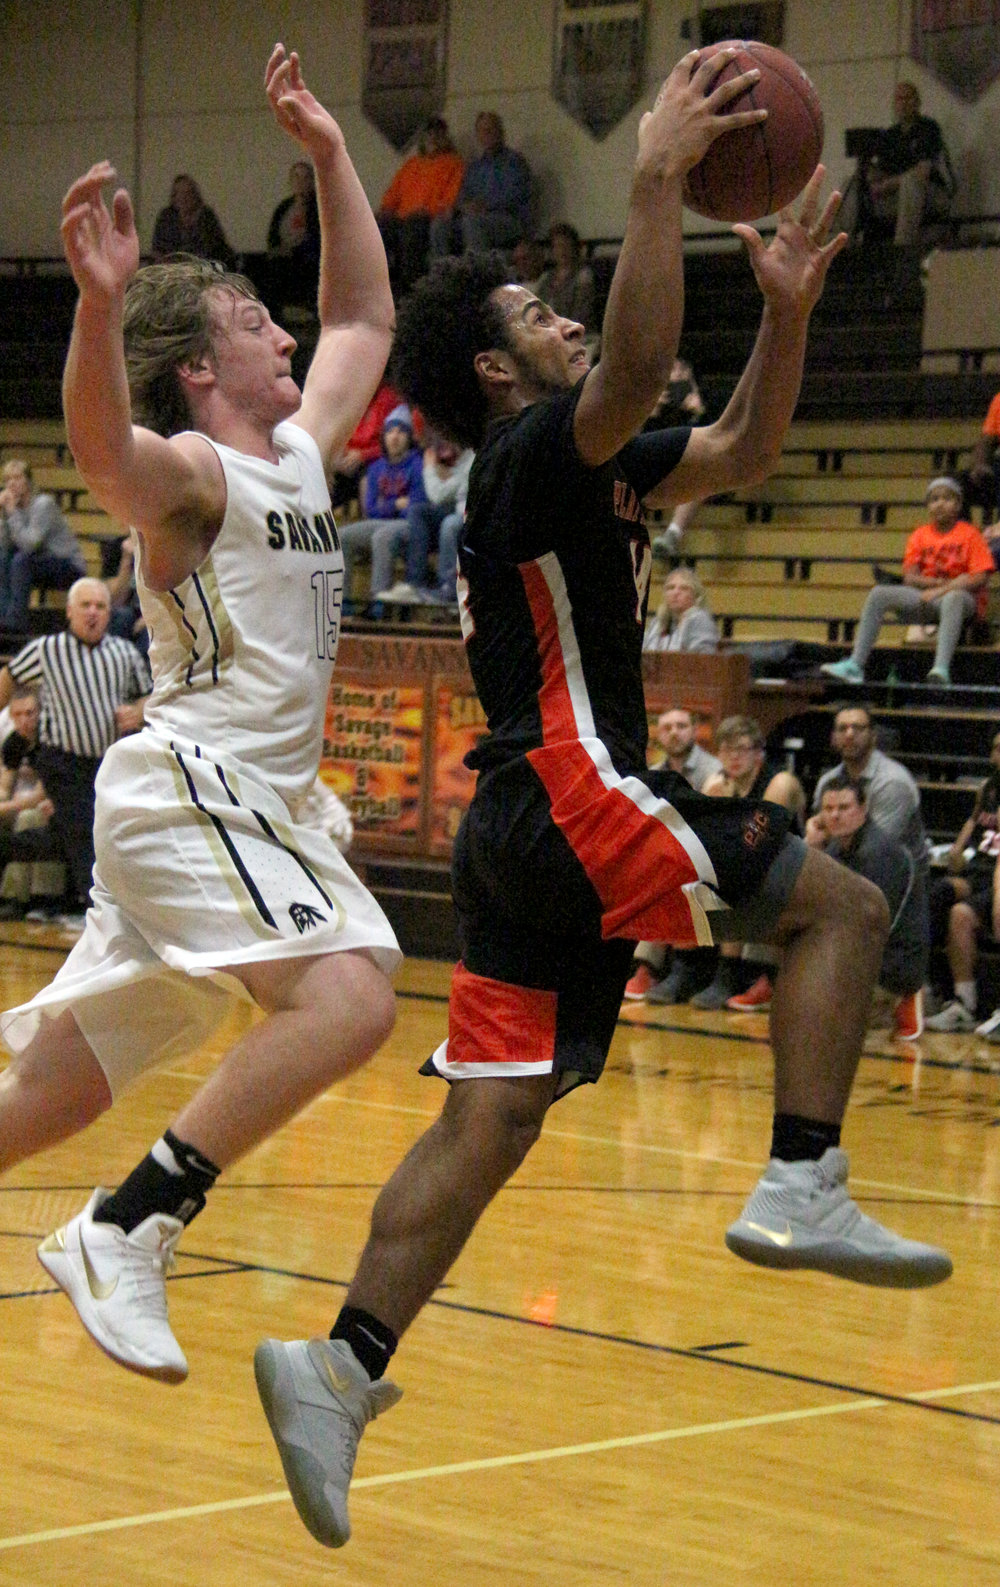 ROSS MARTIN/Citizen photo Platte County senior Kobe Cummings, right, goes up for a layup in the second half against Savannah on Monday, Nov. 27 in Savannah, Mo.